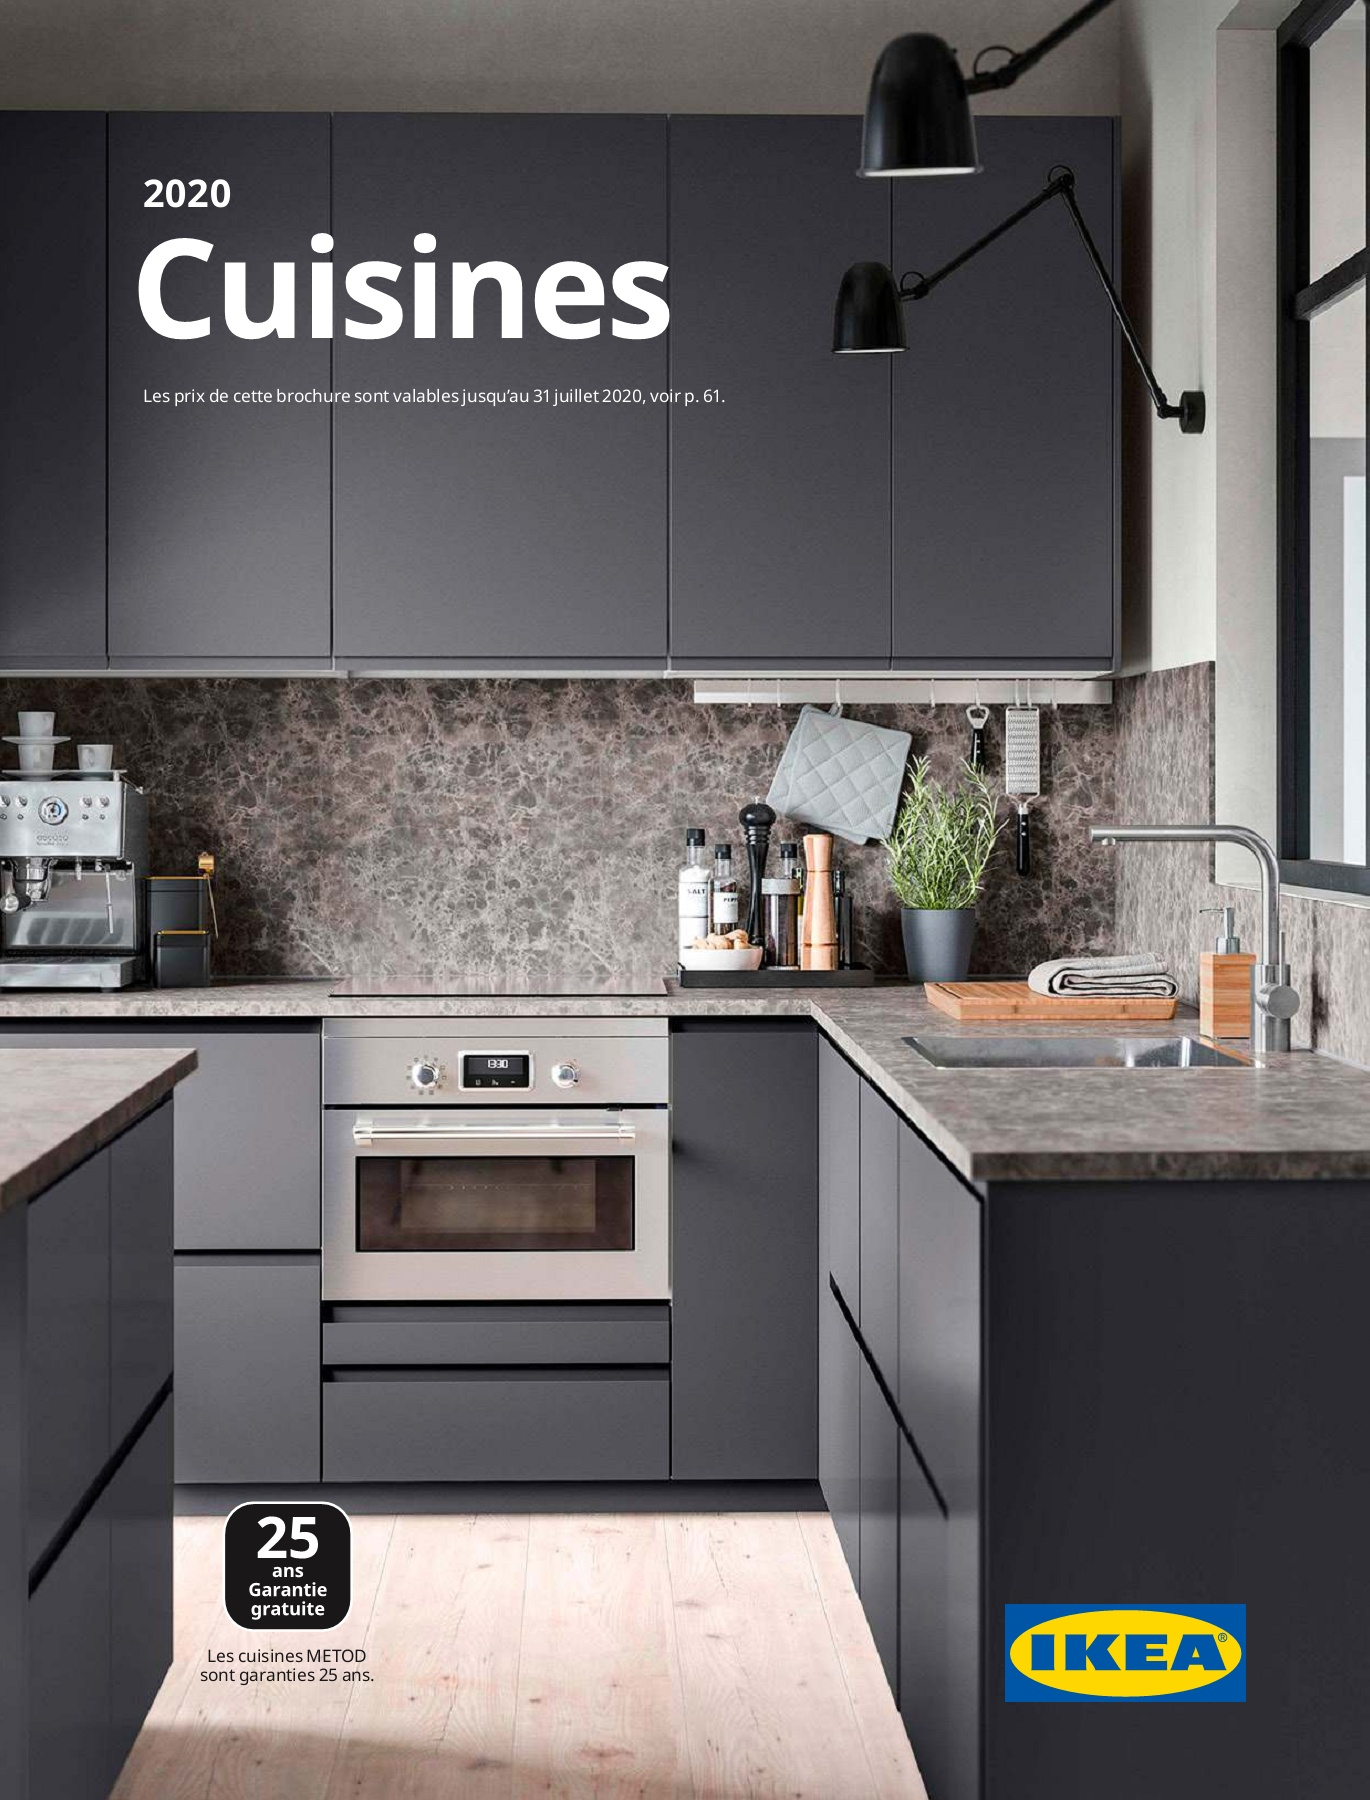 Ikea Cuisine Pages 1 50 Text Version Anyflip